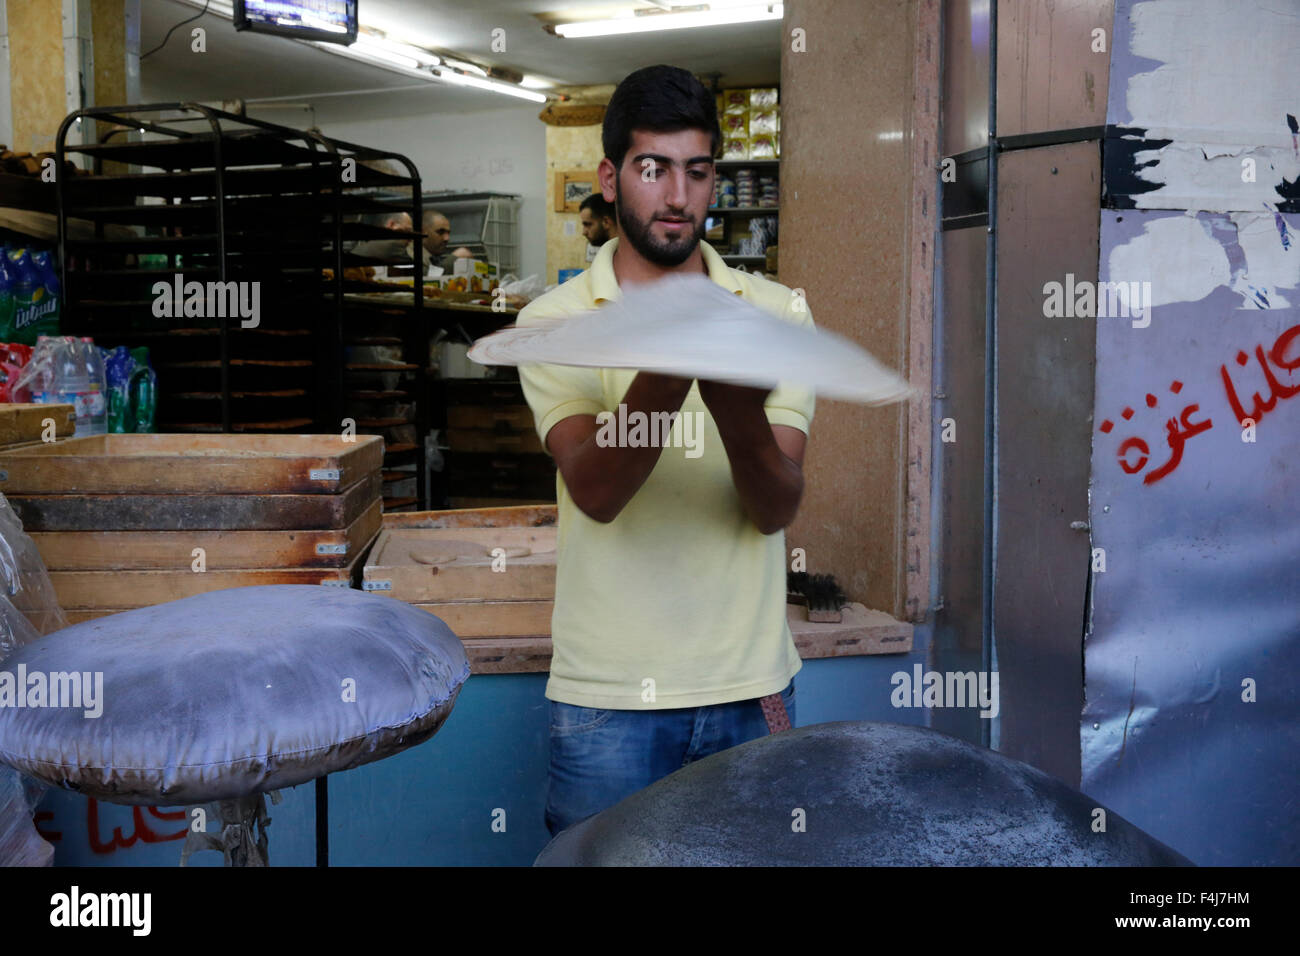 Bakery in Ramallah, West Bank, Palestinian Territories, Middle East - Stock Image